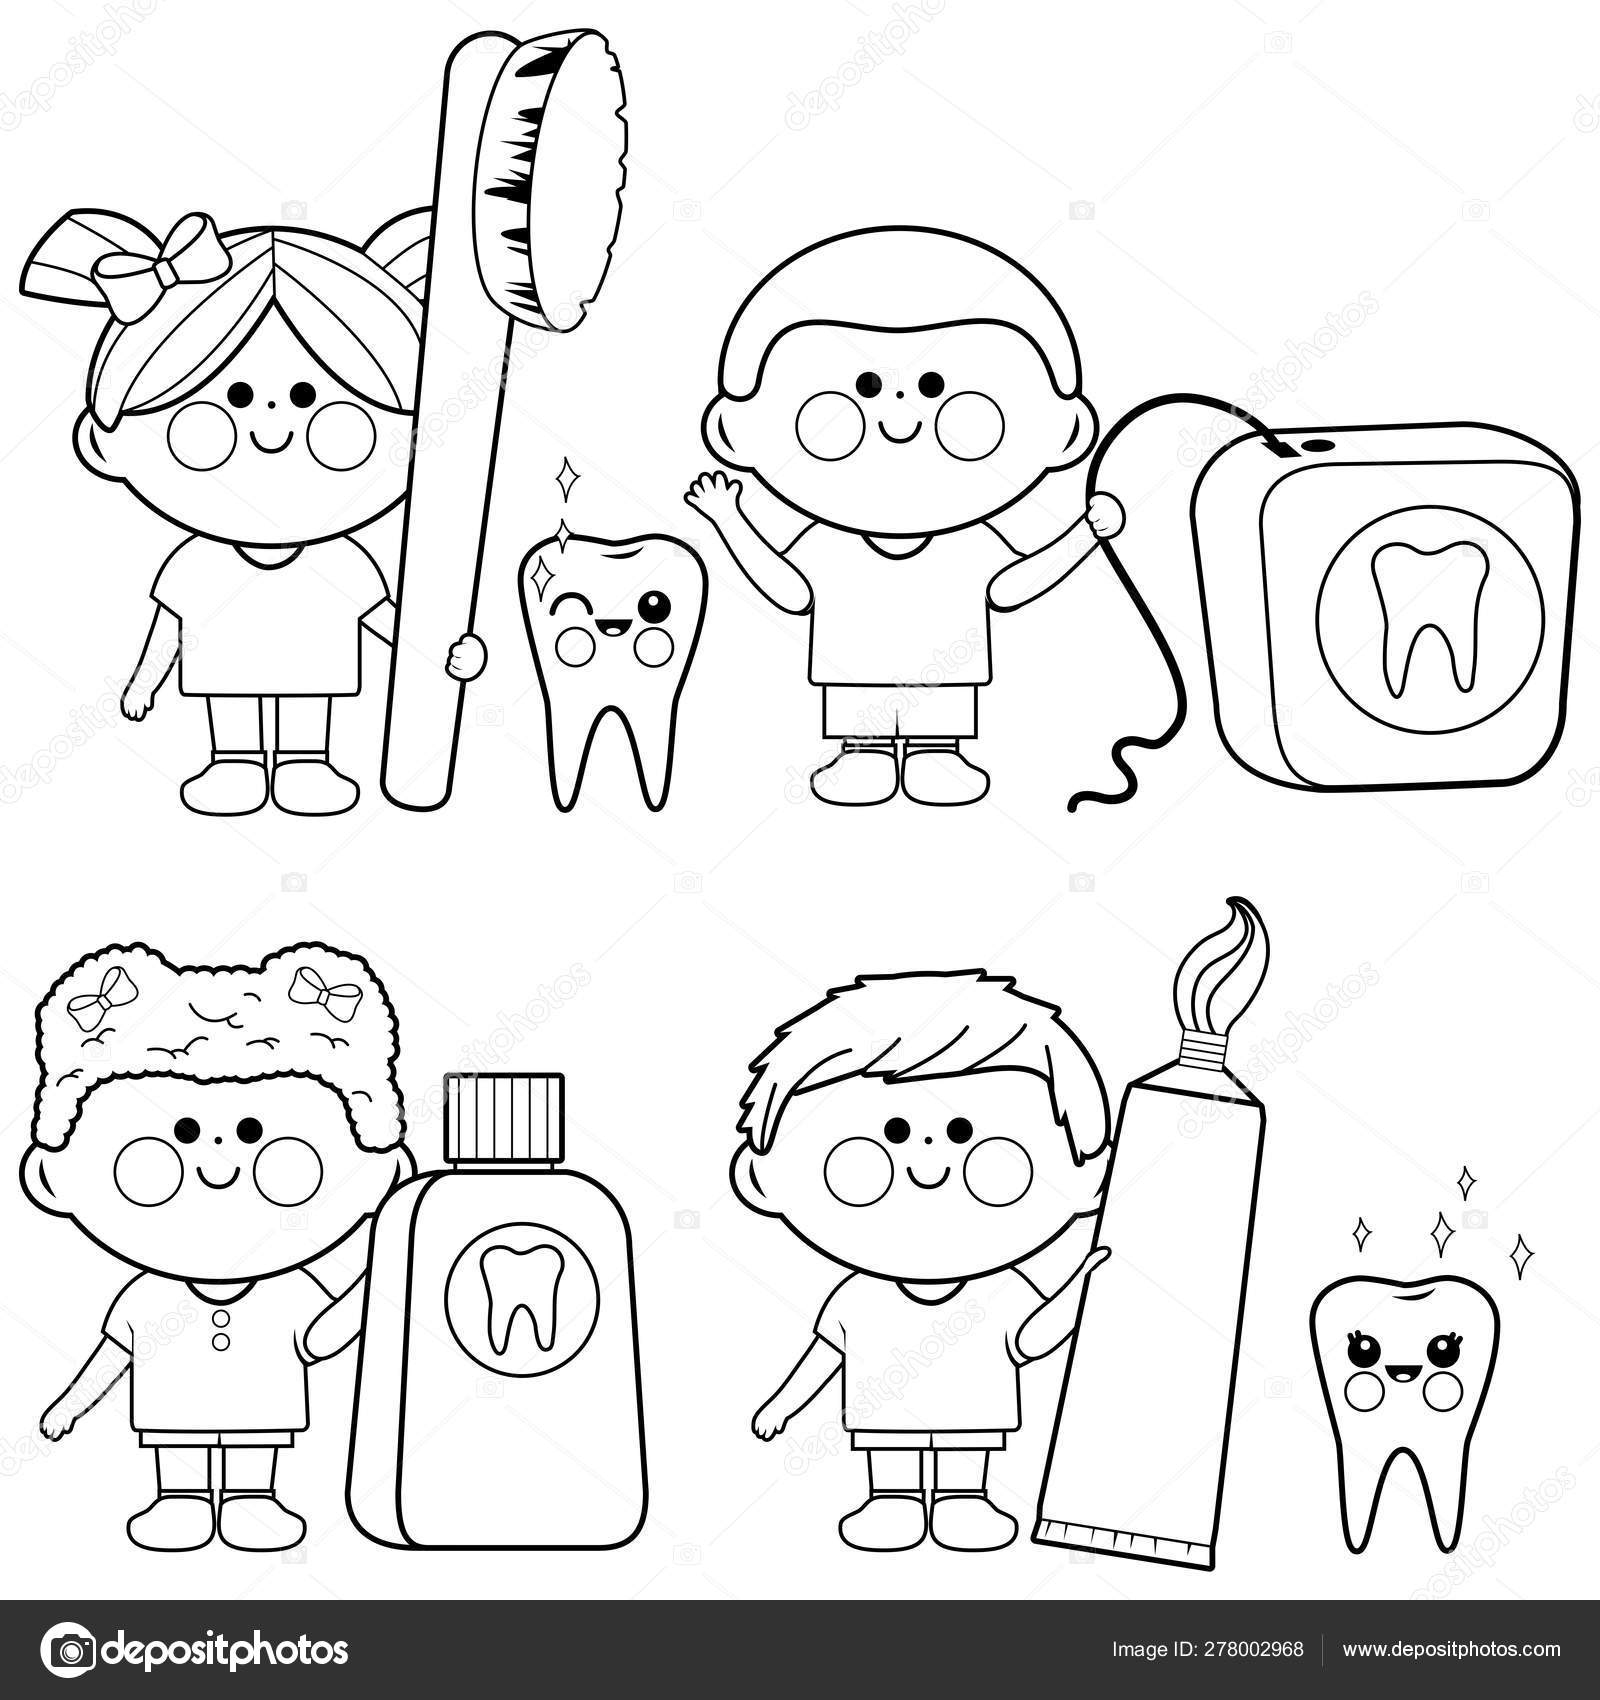 Dental Coloring Pages for Children | Dr. Tom Conner DDS | 1700x1600